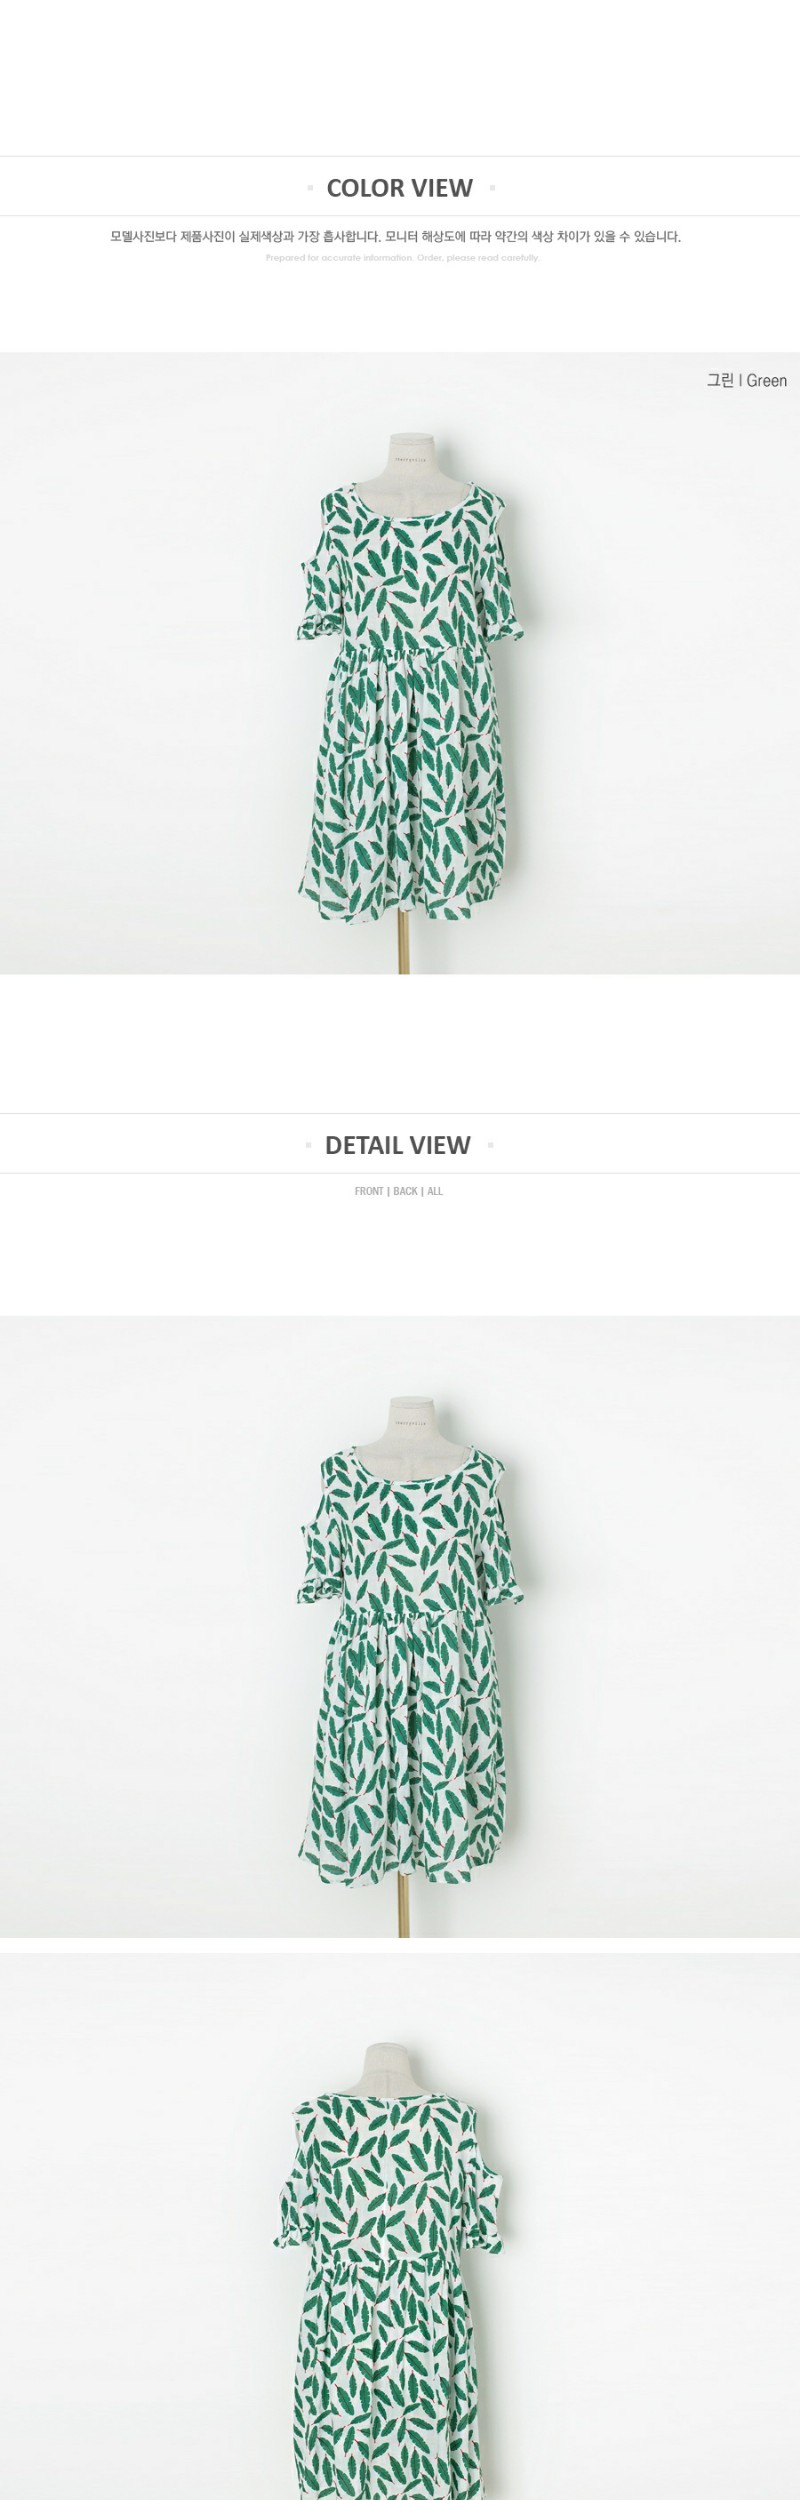 Cool, exciting dress